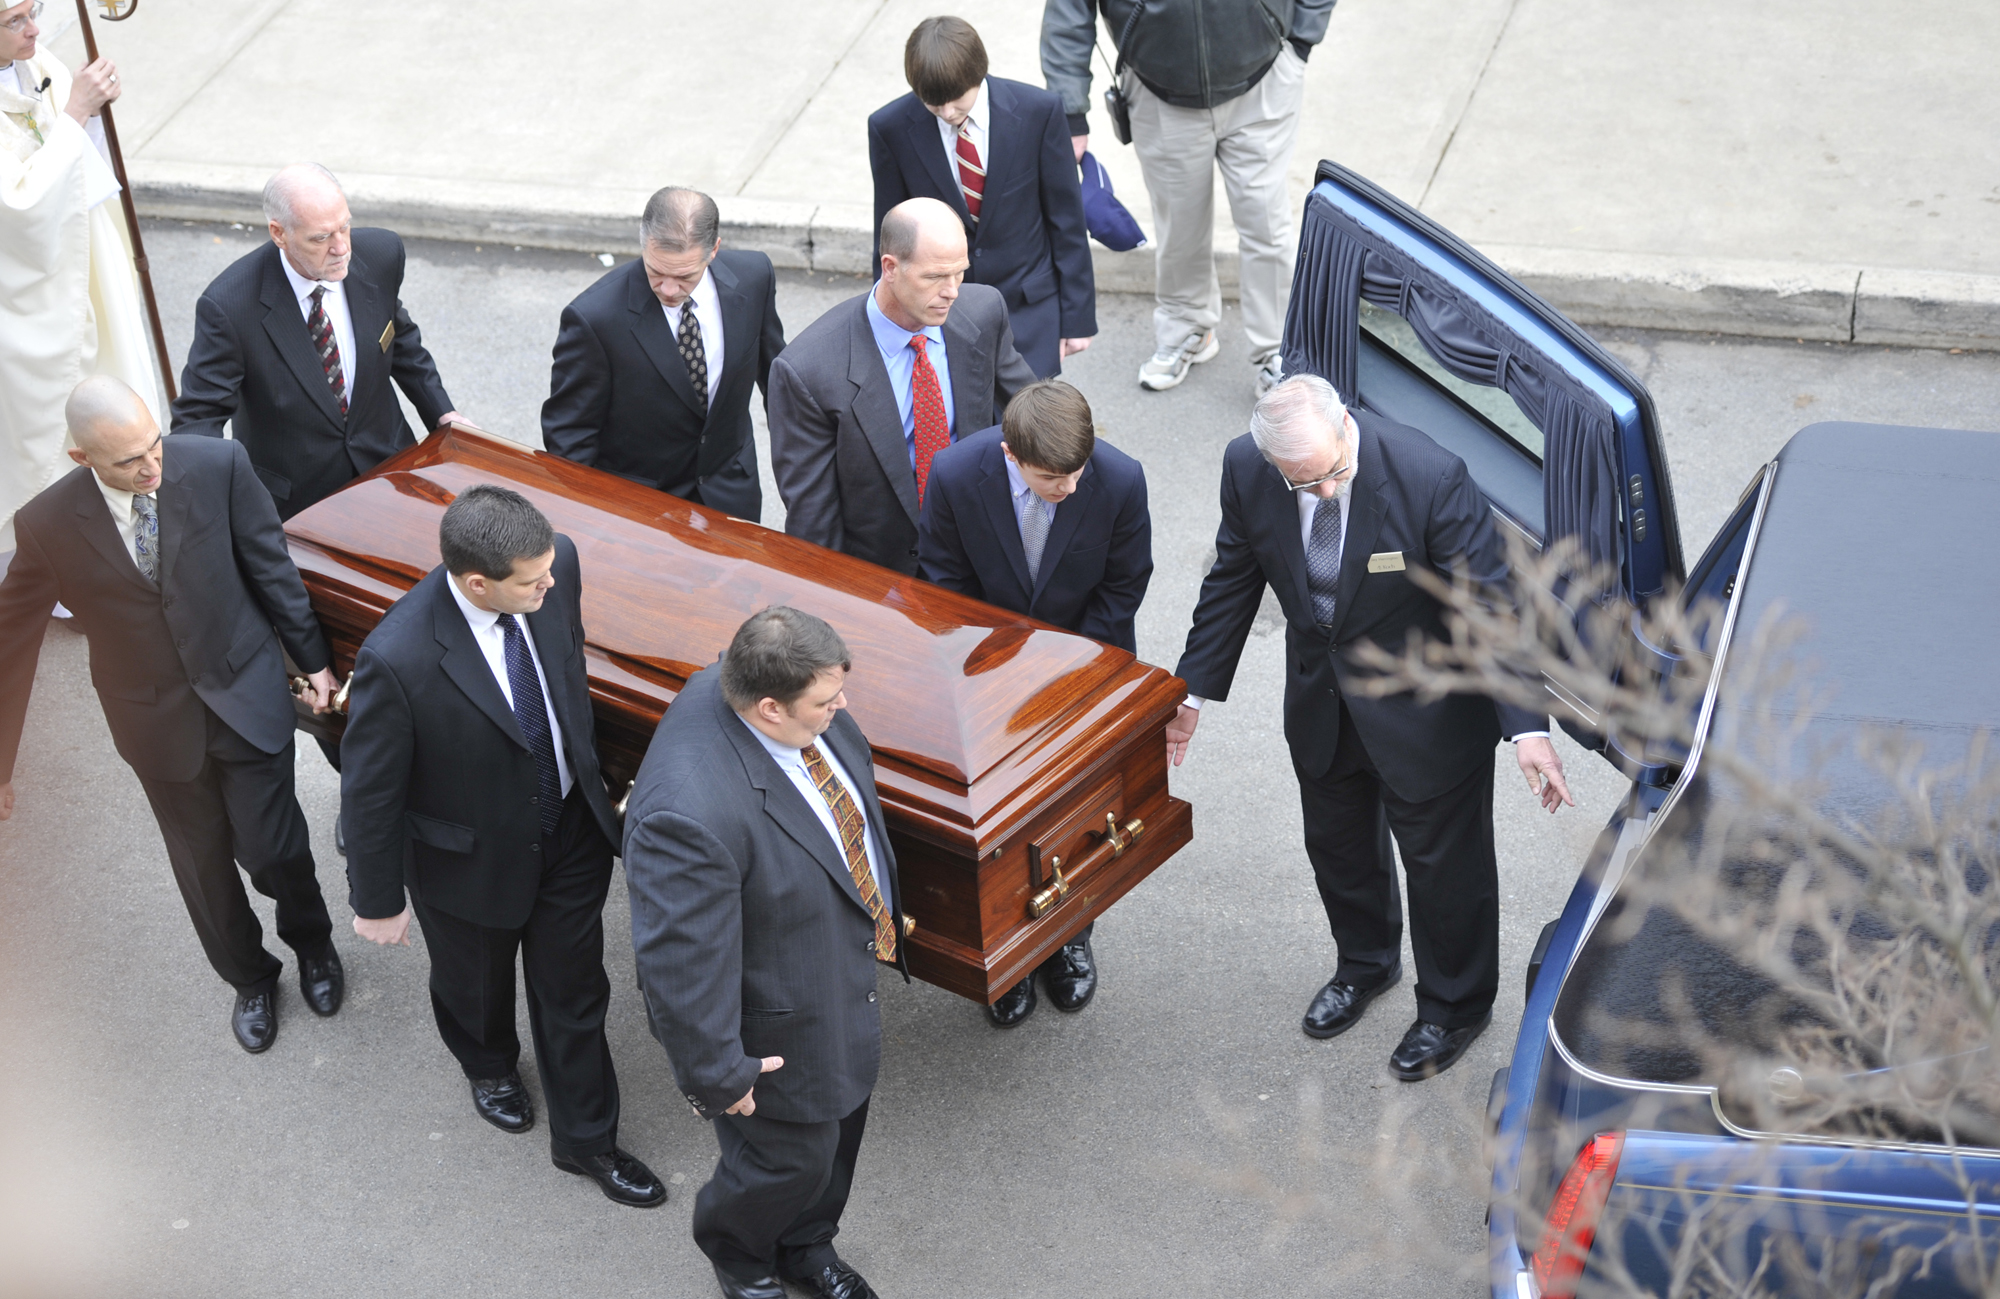 Pallbearers carry the casket of former head football coach Joe Paterno to the hearse parked outside of the Pasquerilla Spiritual Center on Wednesday, Jan. 25, 2012 before the funeral procession around State College.